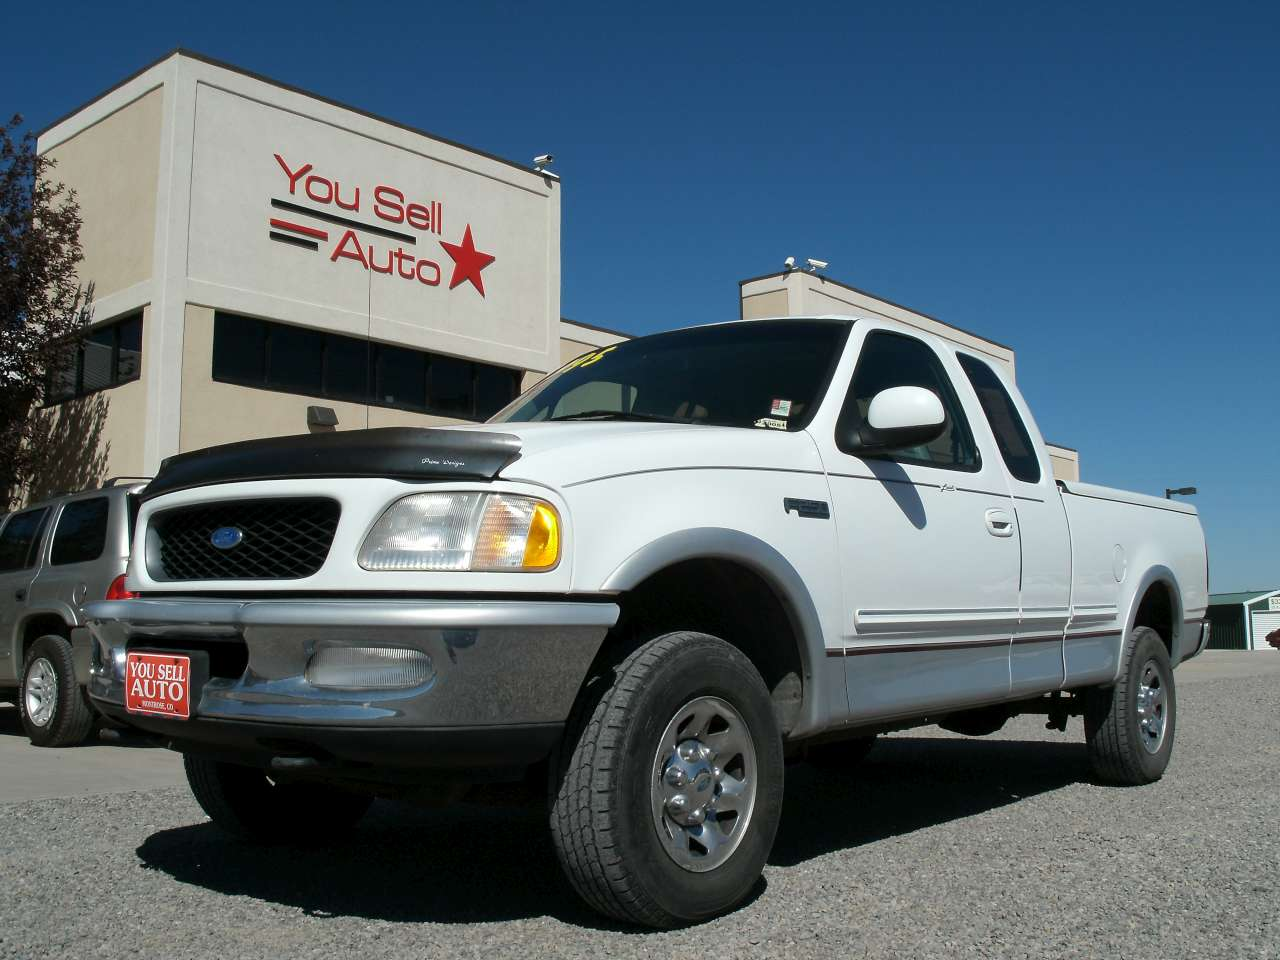 What Is The Towing Capacity Of A Ford F250 >> 1997 Ford F250 Lariat 4x4 SOLD! | You Sell Auto